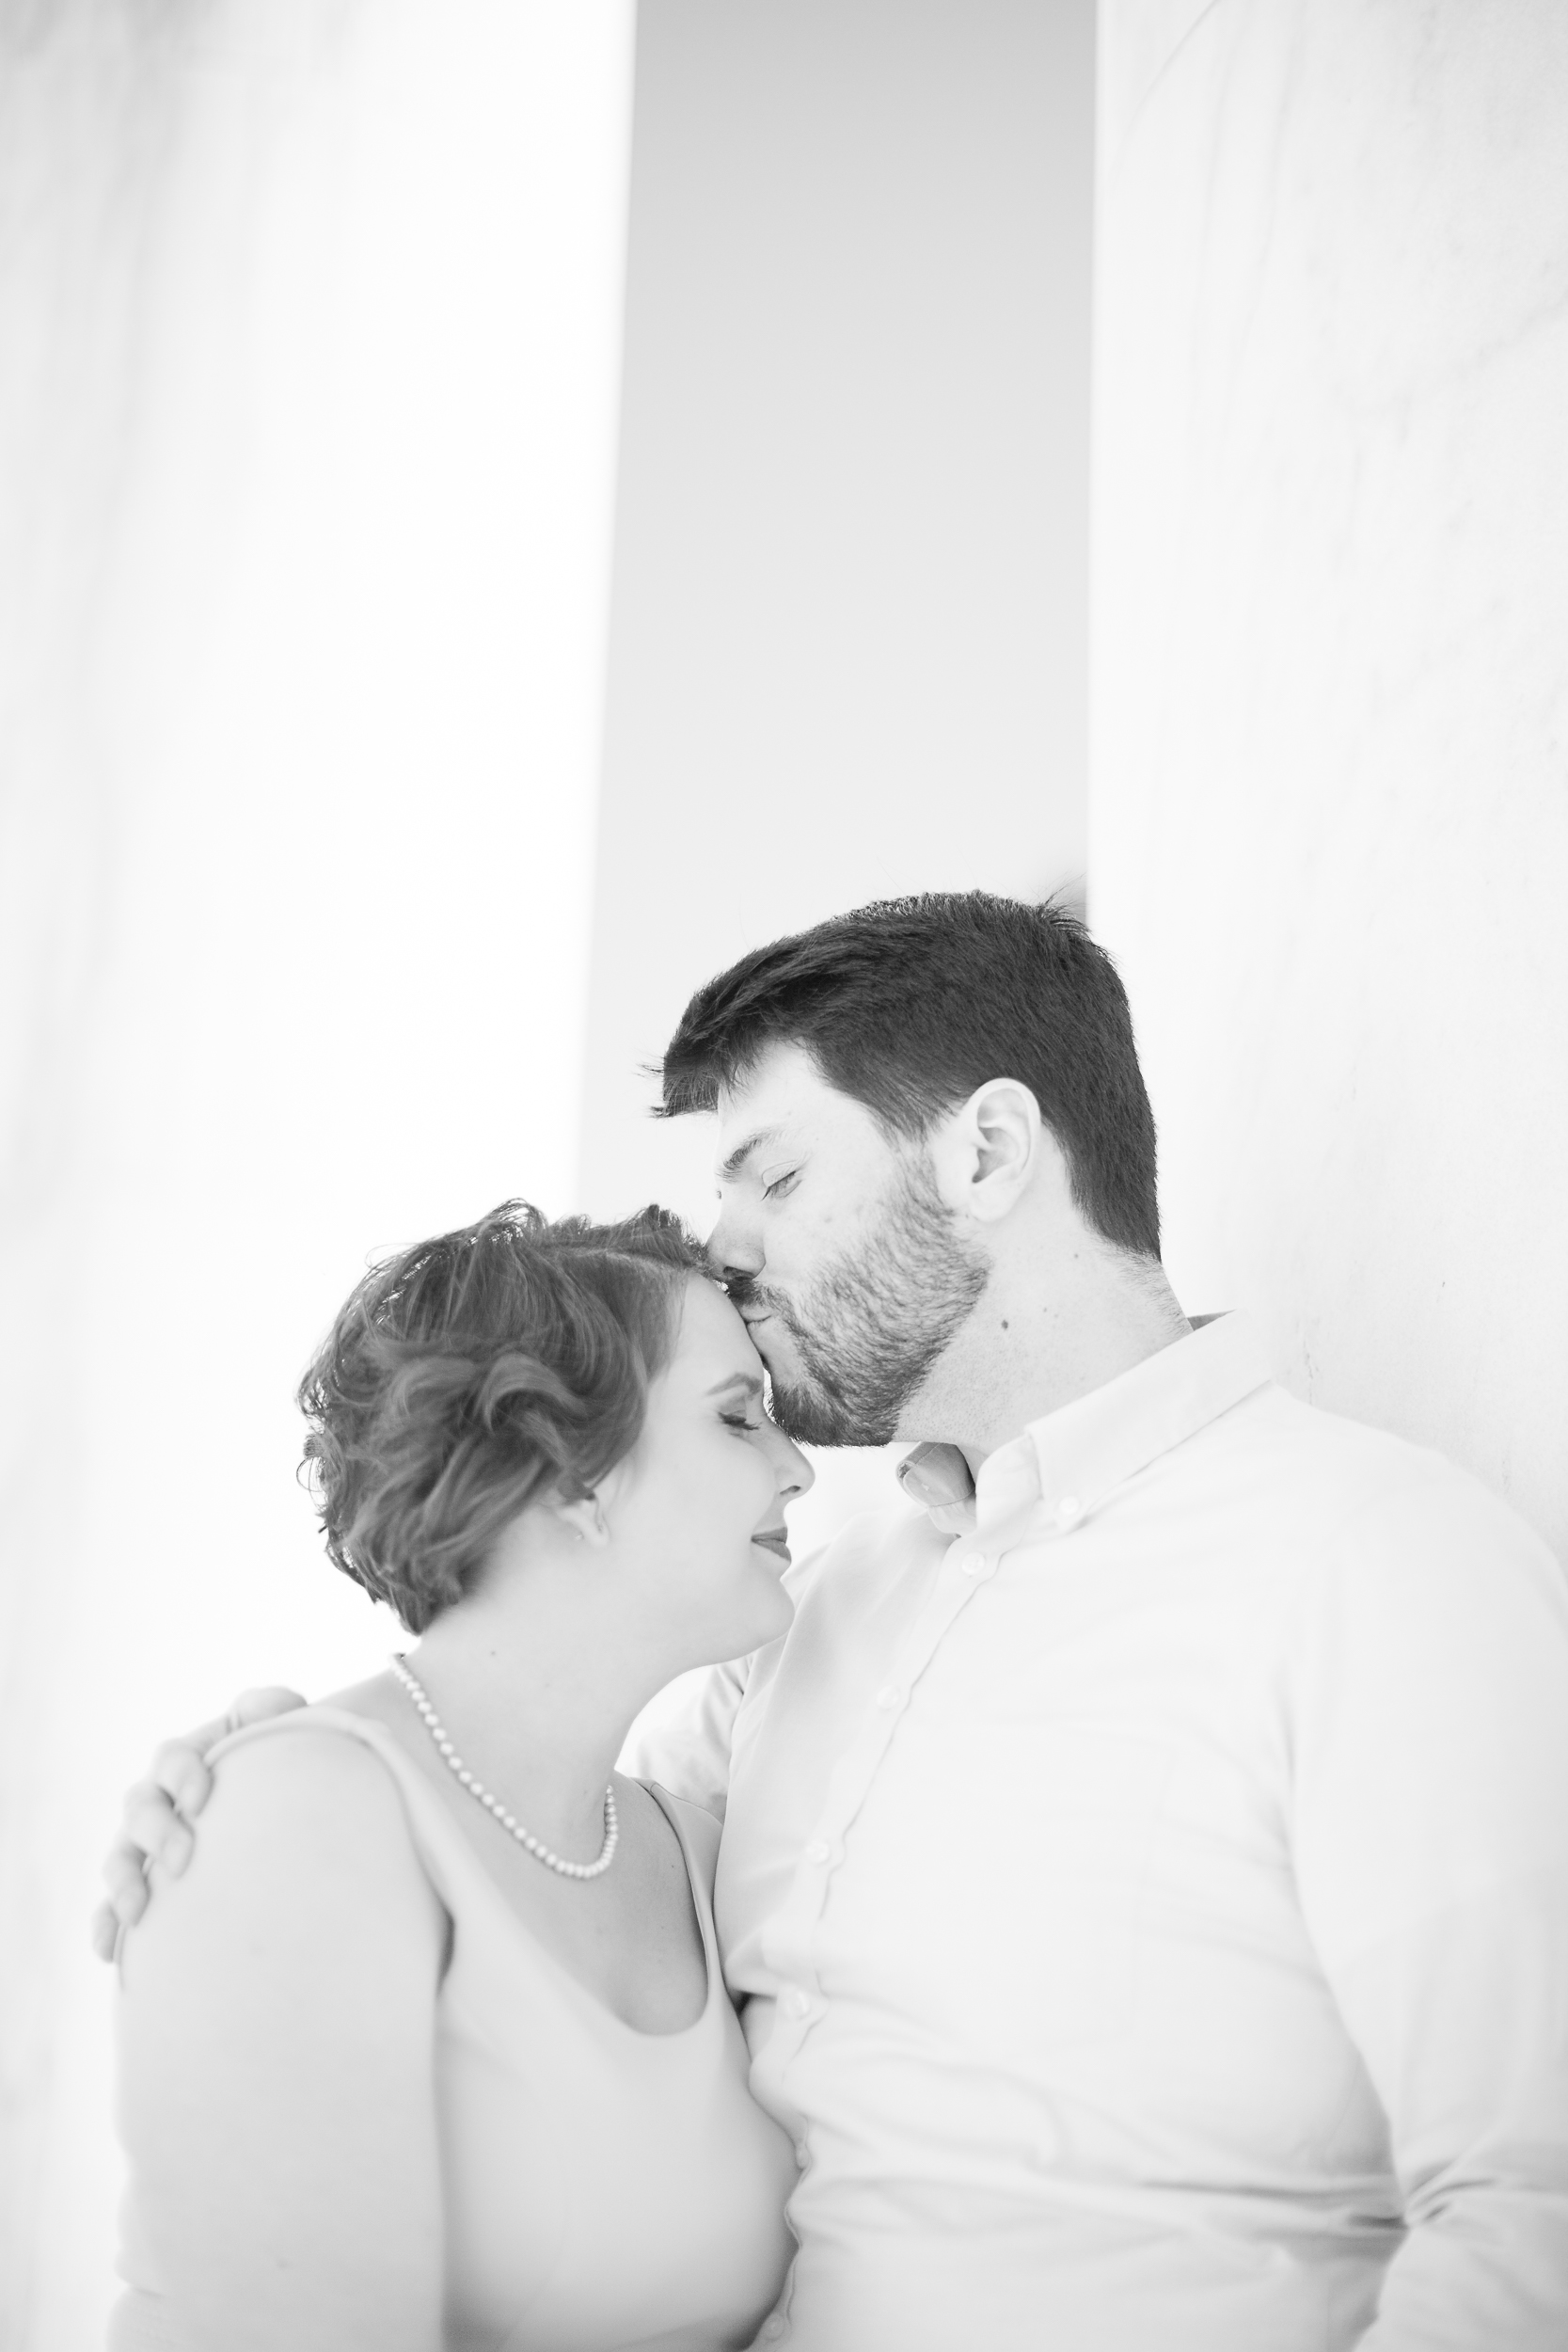 Kathryn-Stephen-Engagement-Kim-Pham-Clark-Photography-04.jpg